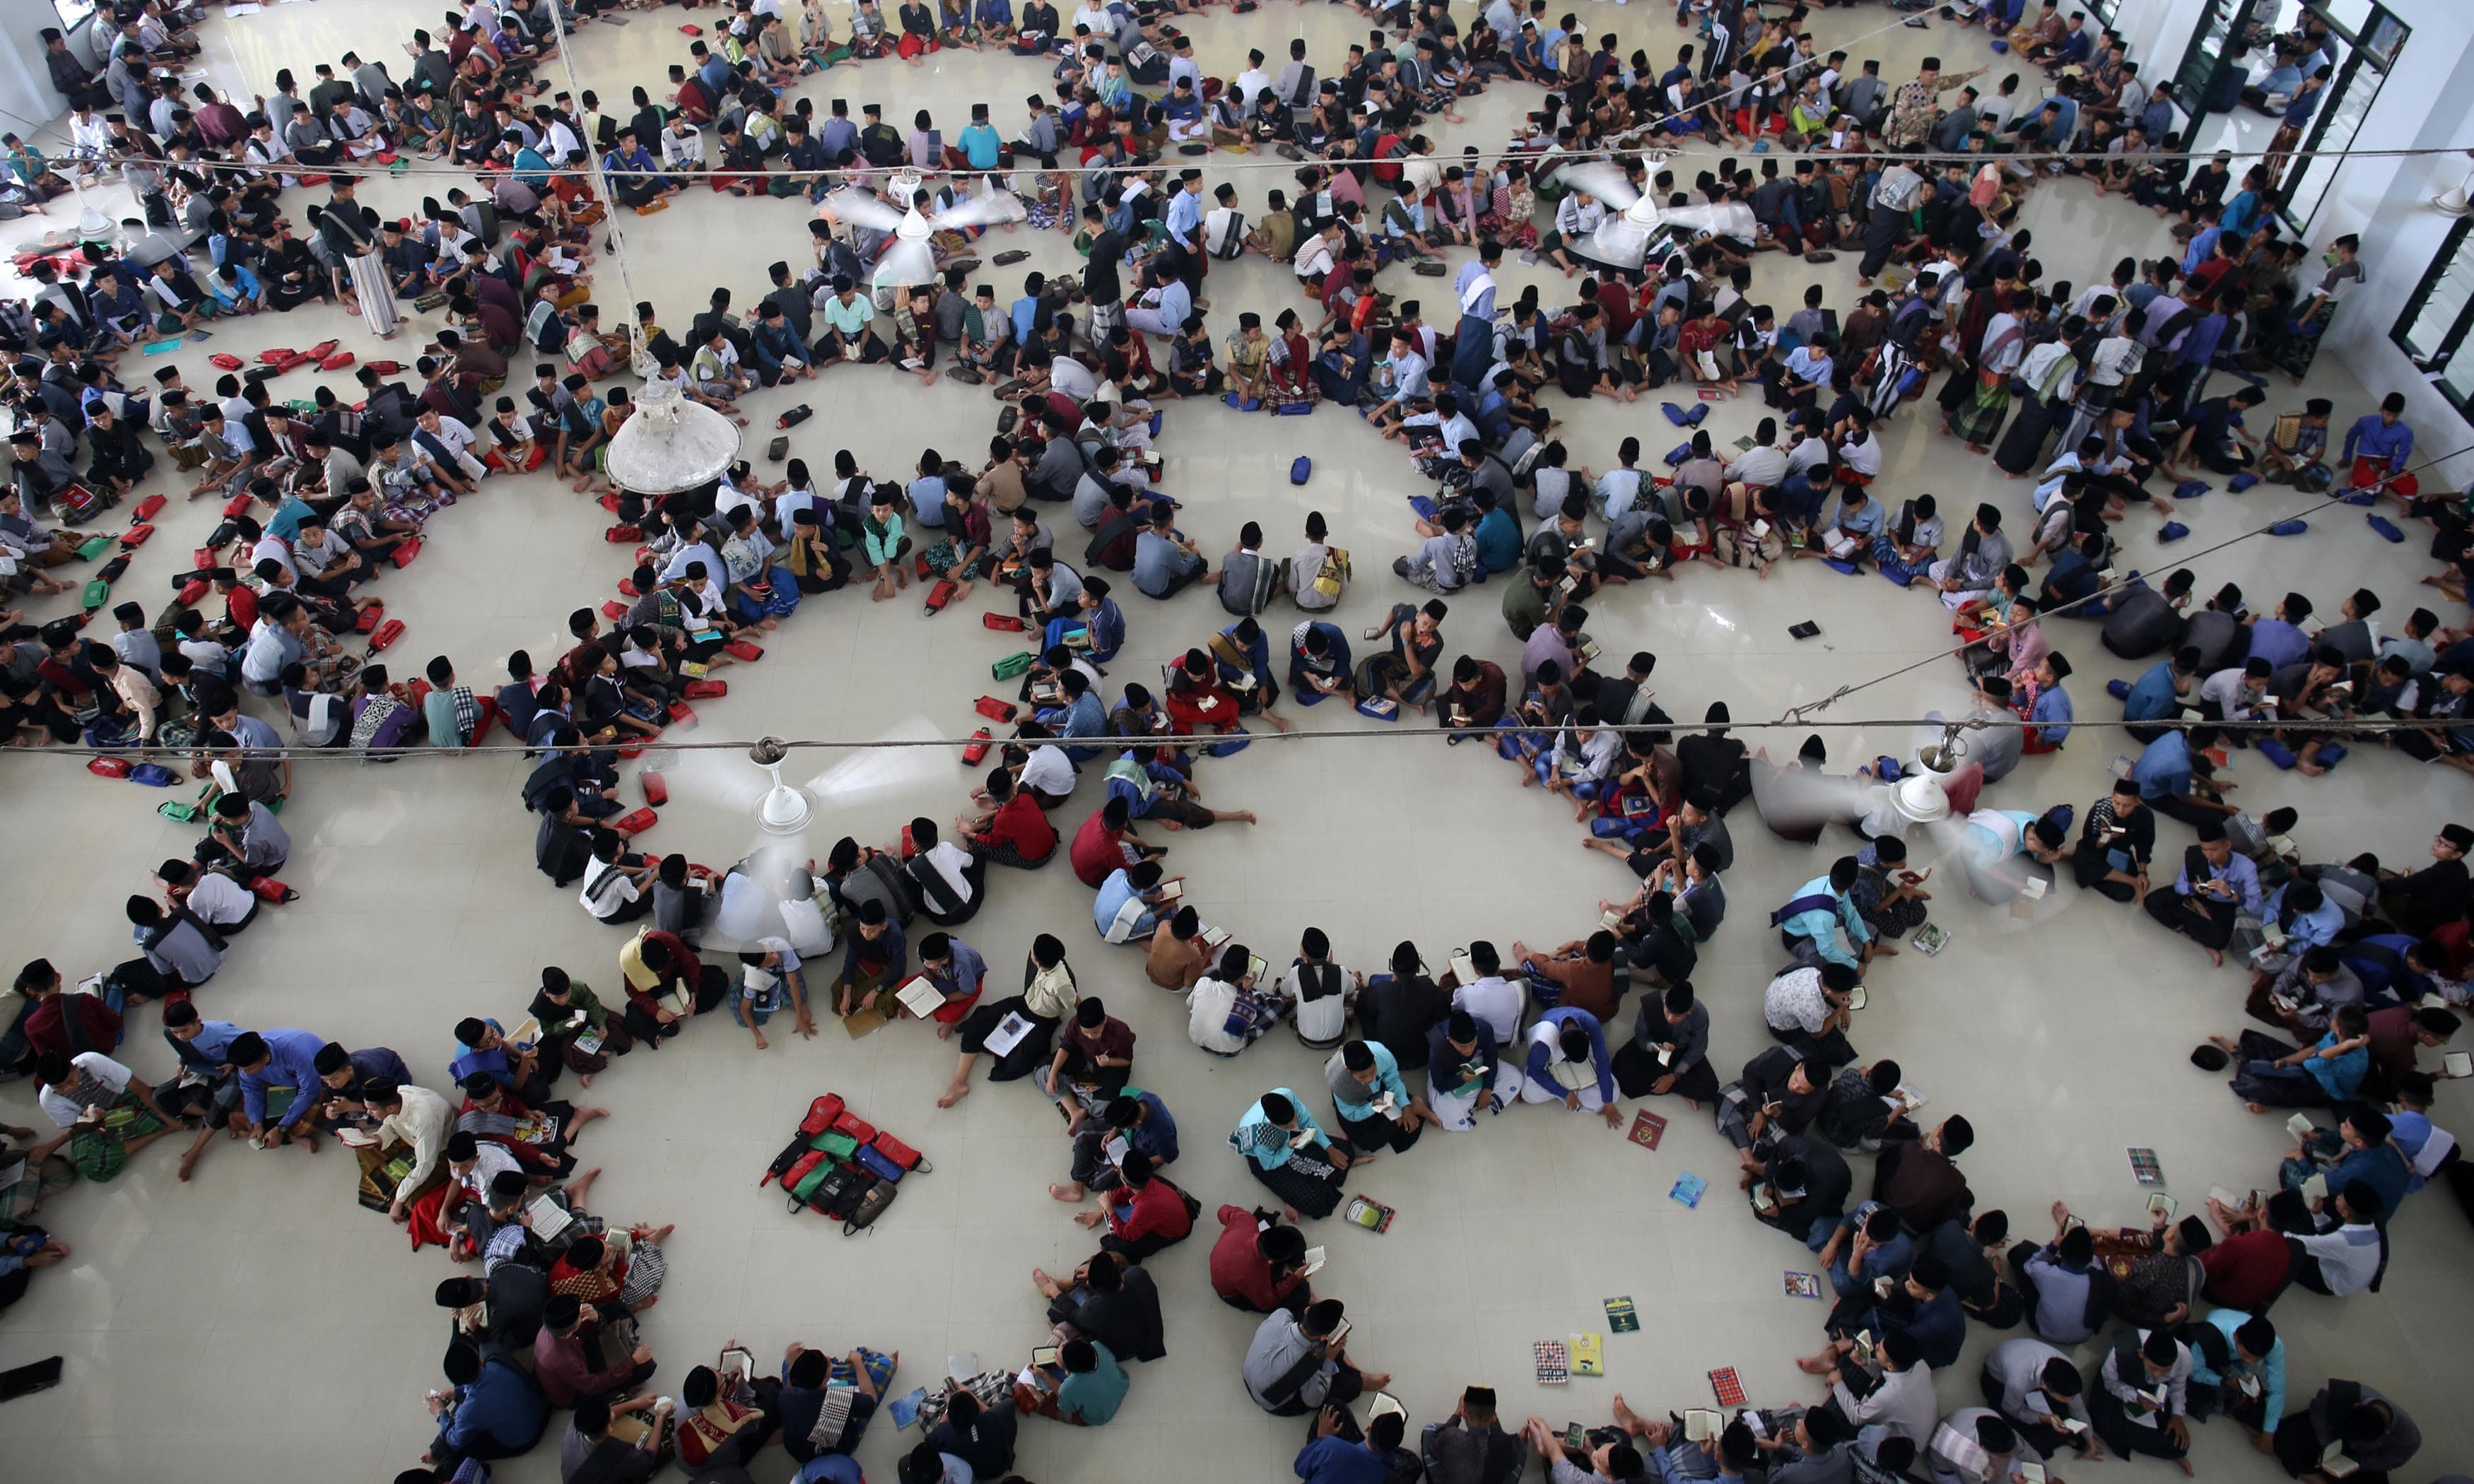 Muslim students from Ar-Raudlatul Hasanah boarding school sit in circles as they read the Holy Quran in Medan, North Sumatra, Indonesia. — Reuters